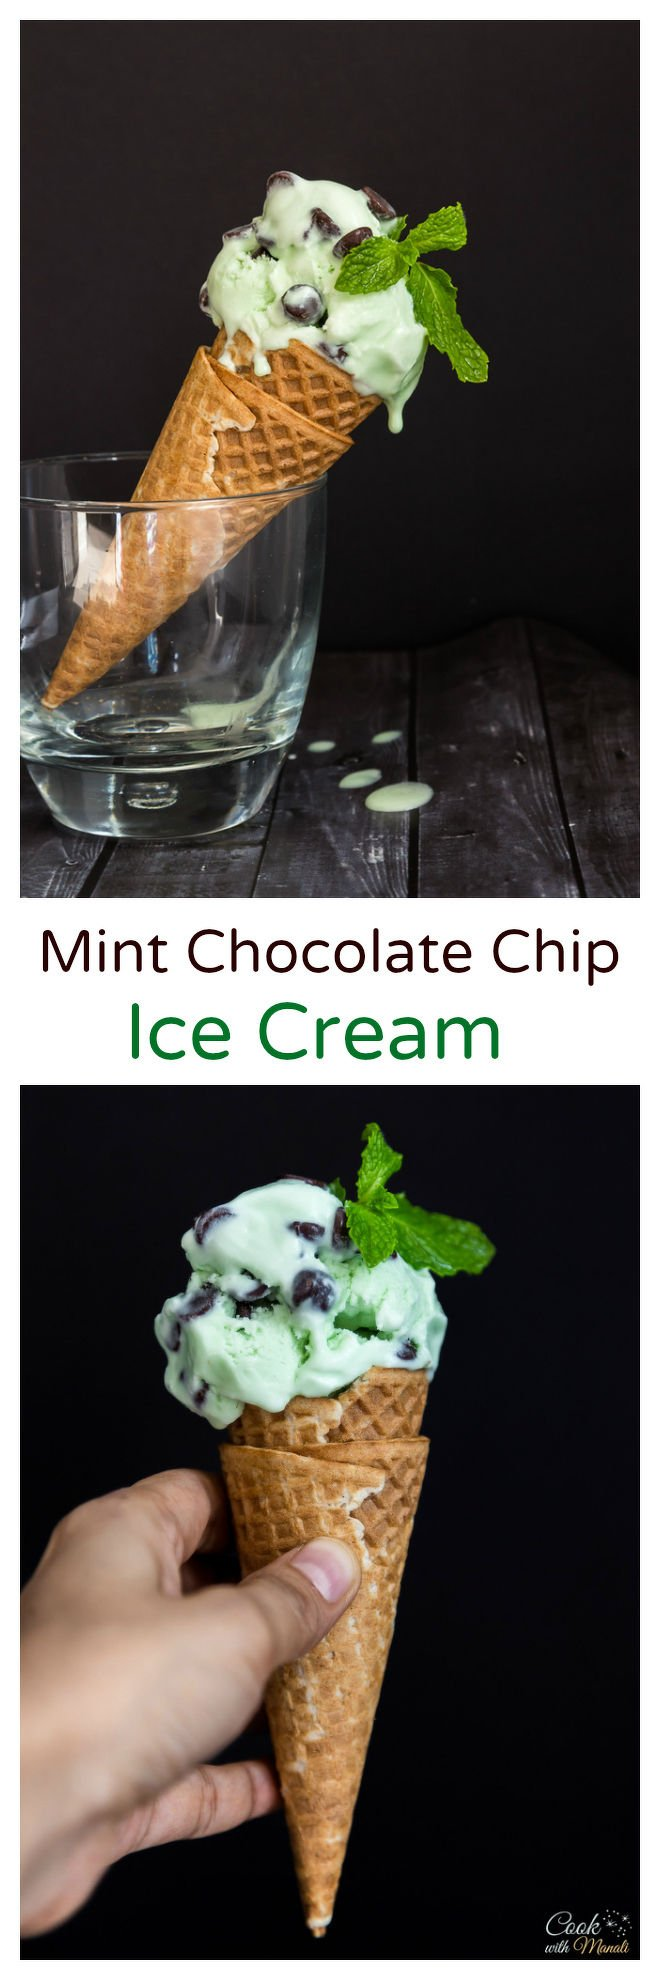 Mint Chocolate Chip Ice Cream Collage-nocwm